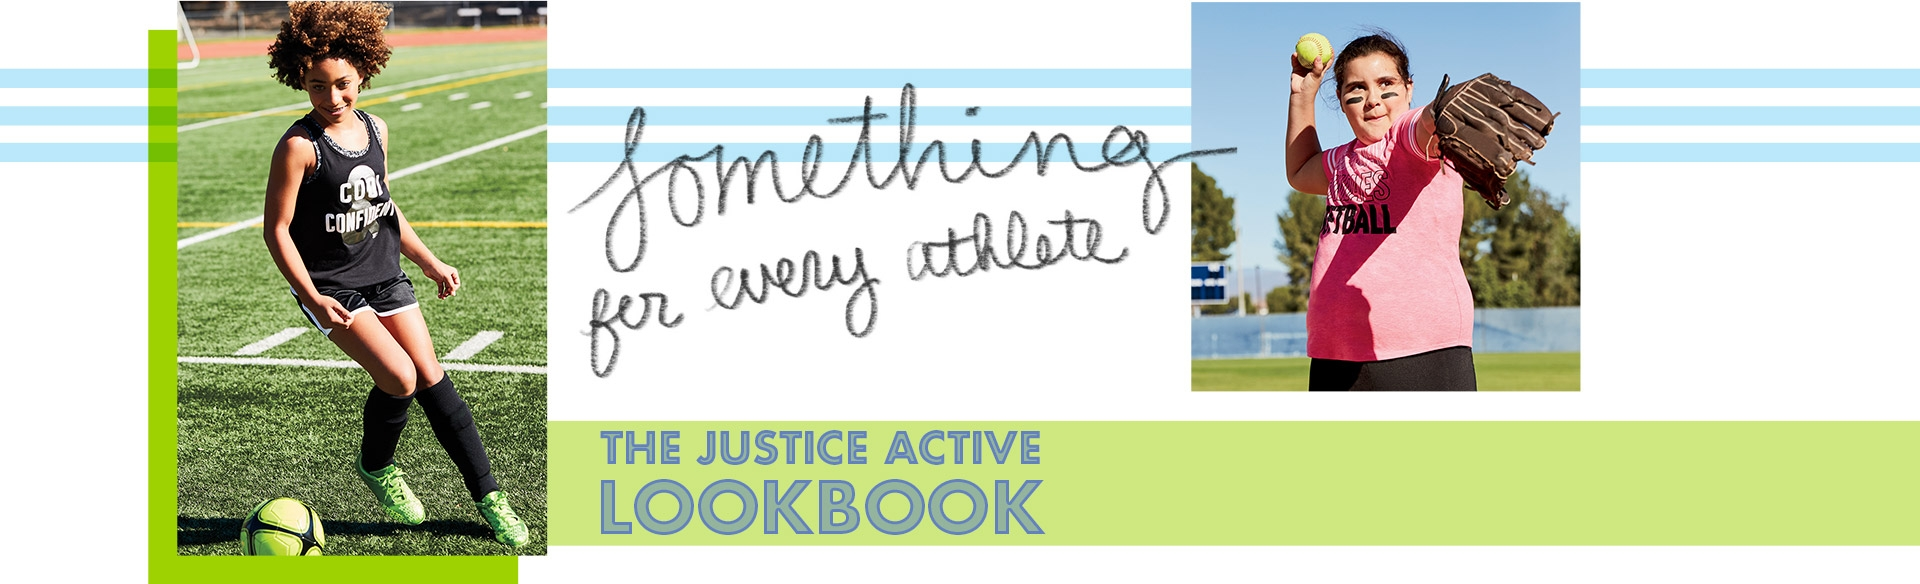 Explore the justice active lookbook!